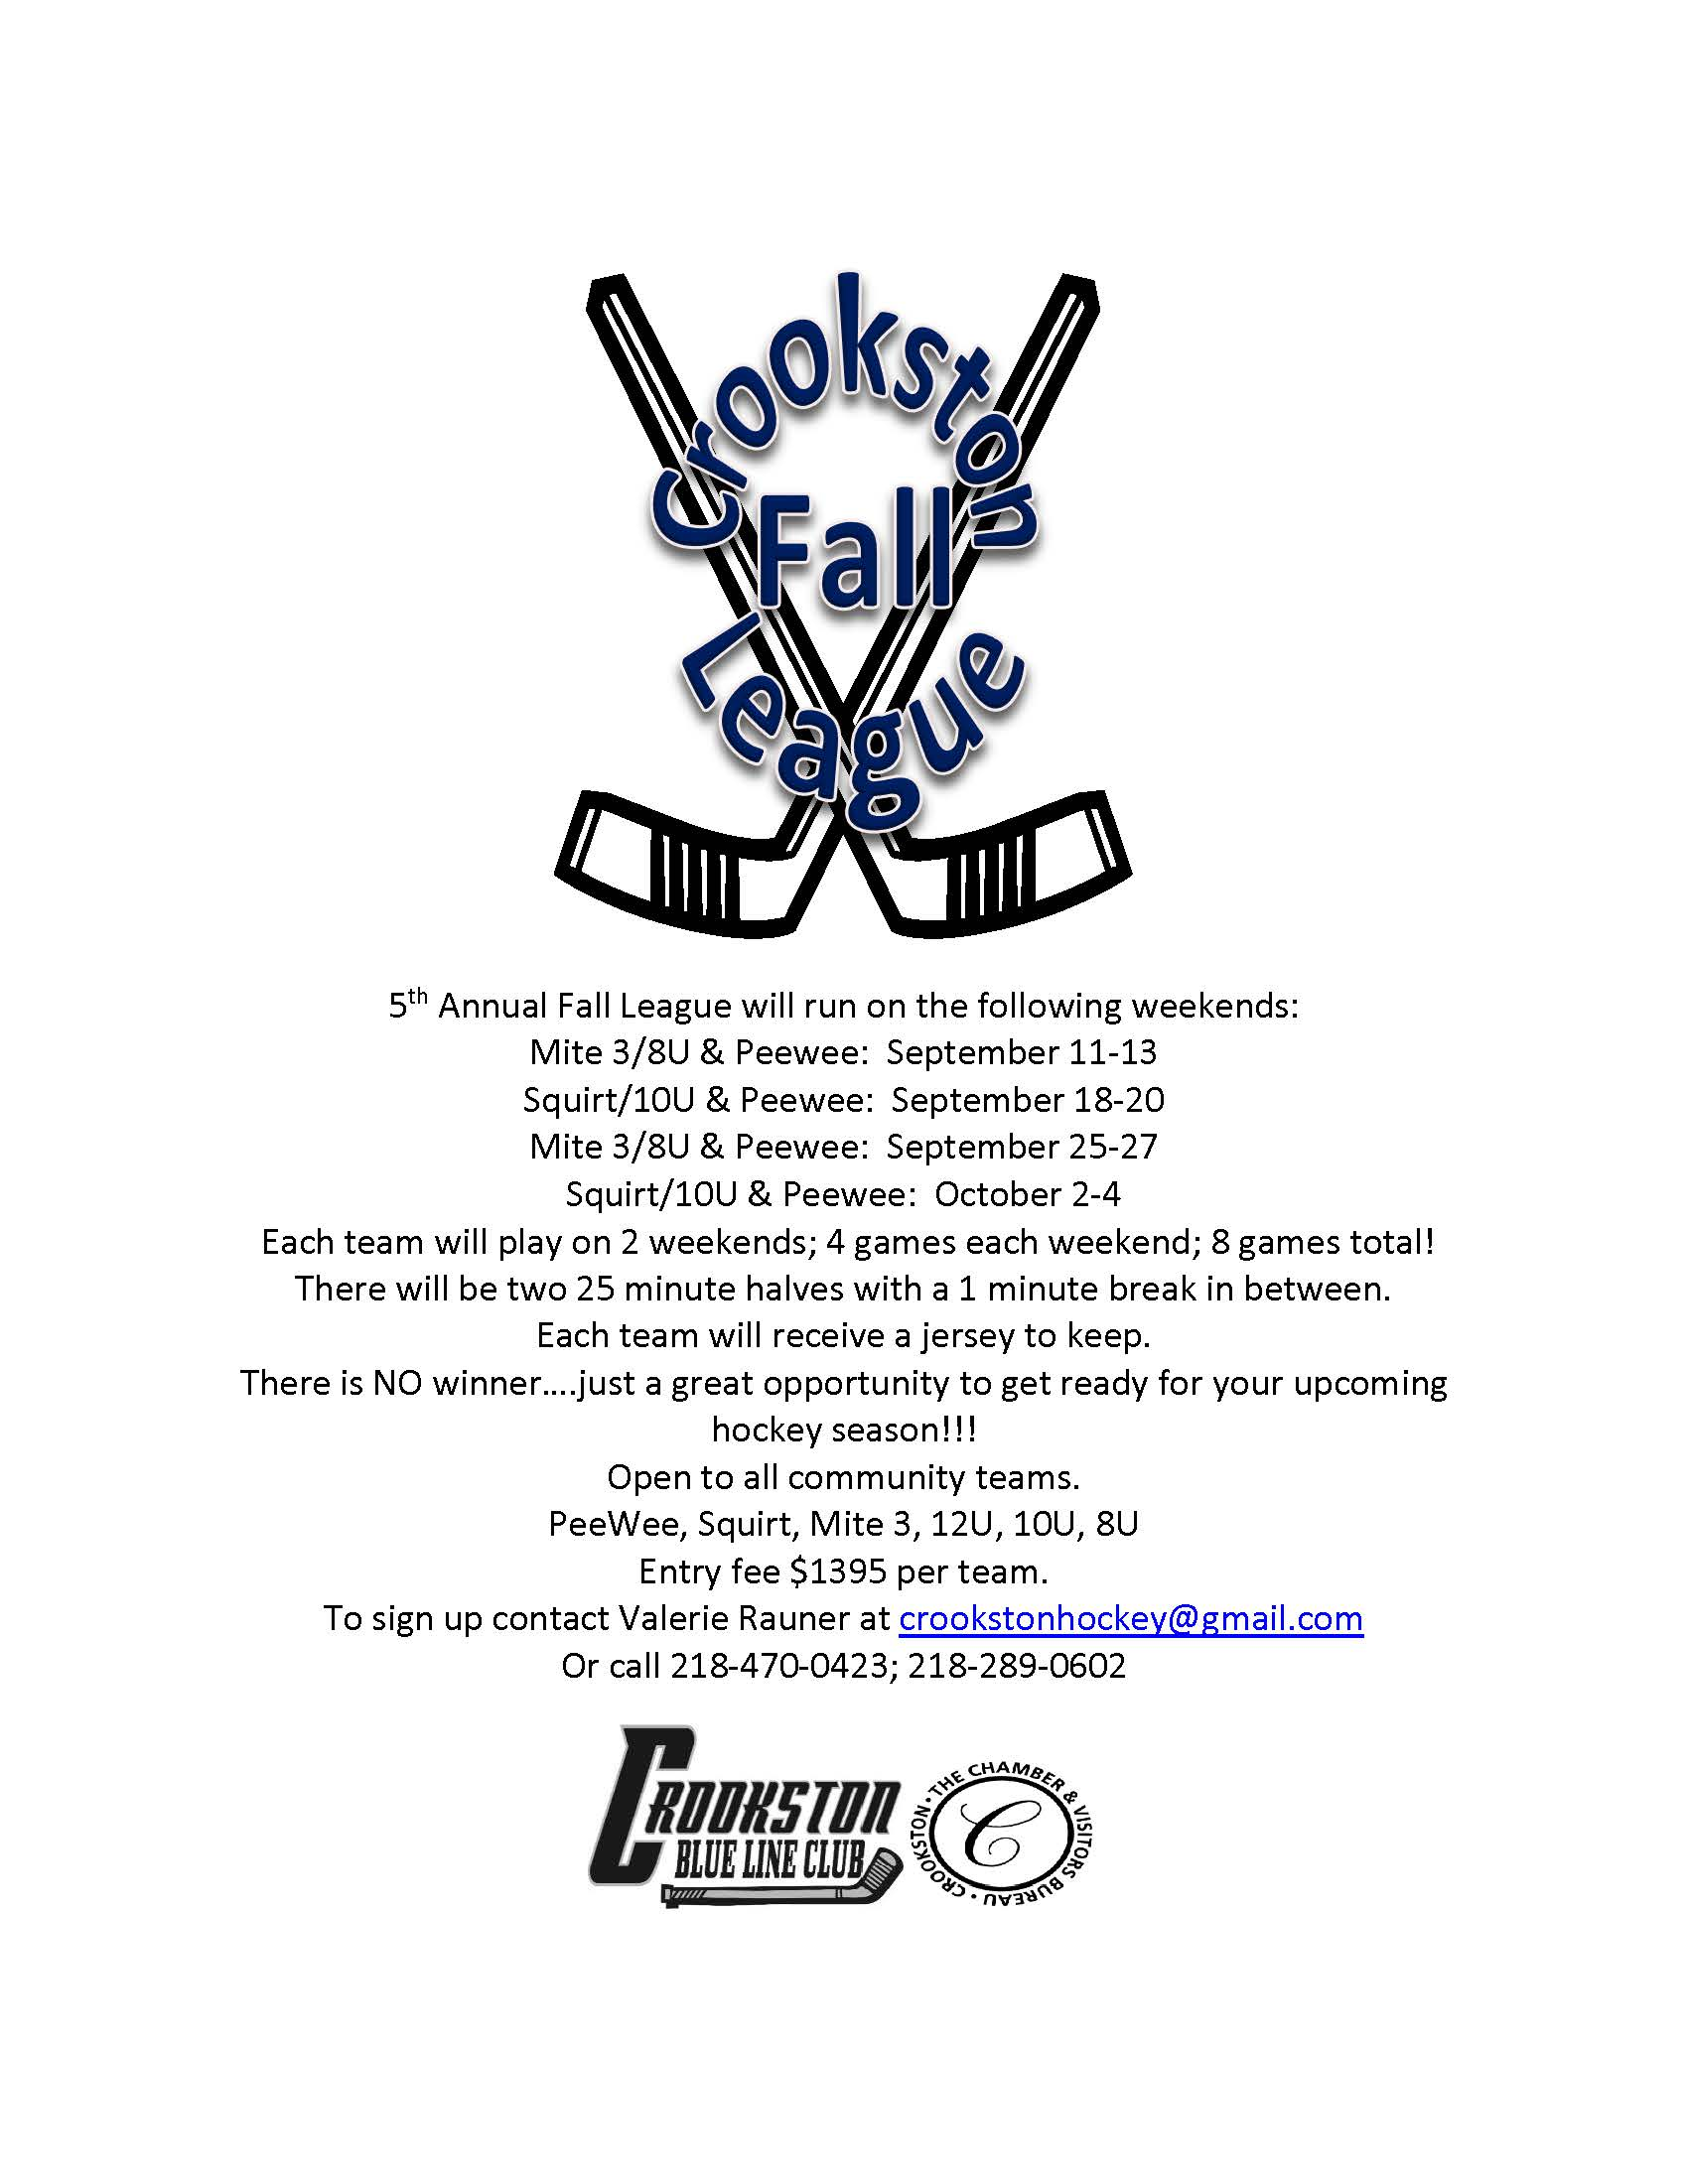 Fall League Flyer-1.jpg